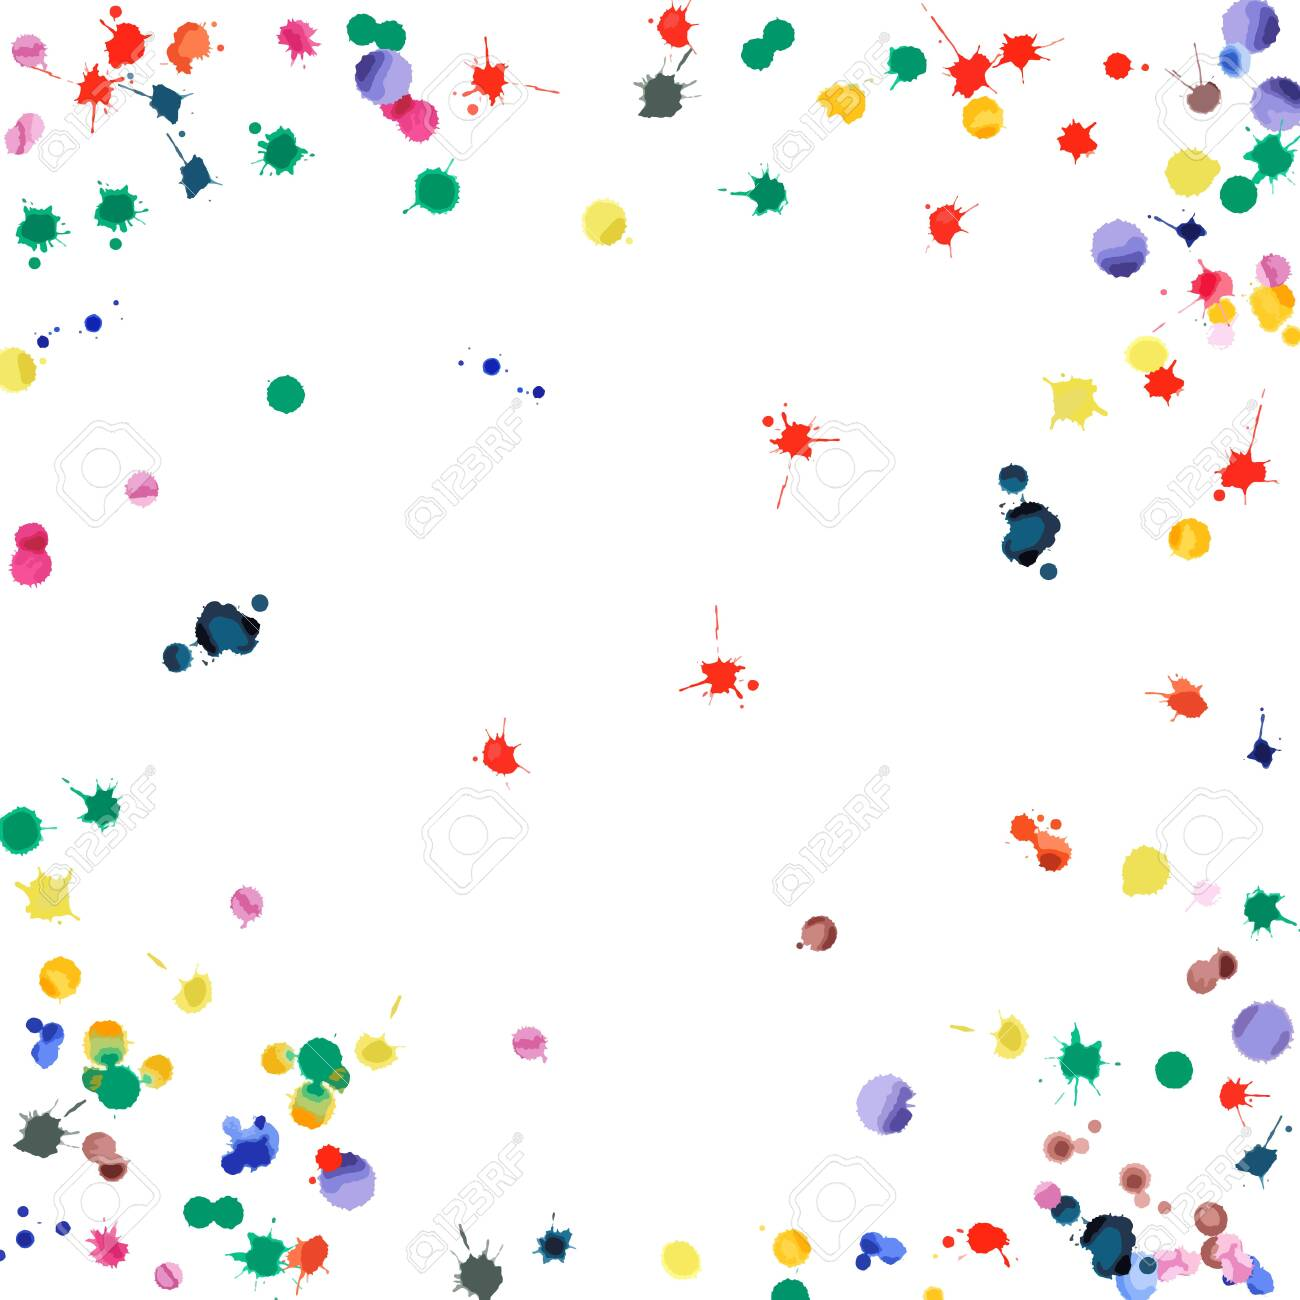 Watercolor confetti on white background. Rainbow colored blobs square vignette. Colorful bright hand painted illustration. Happy celebration party background. Emotional vector illustration. - 130106064